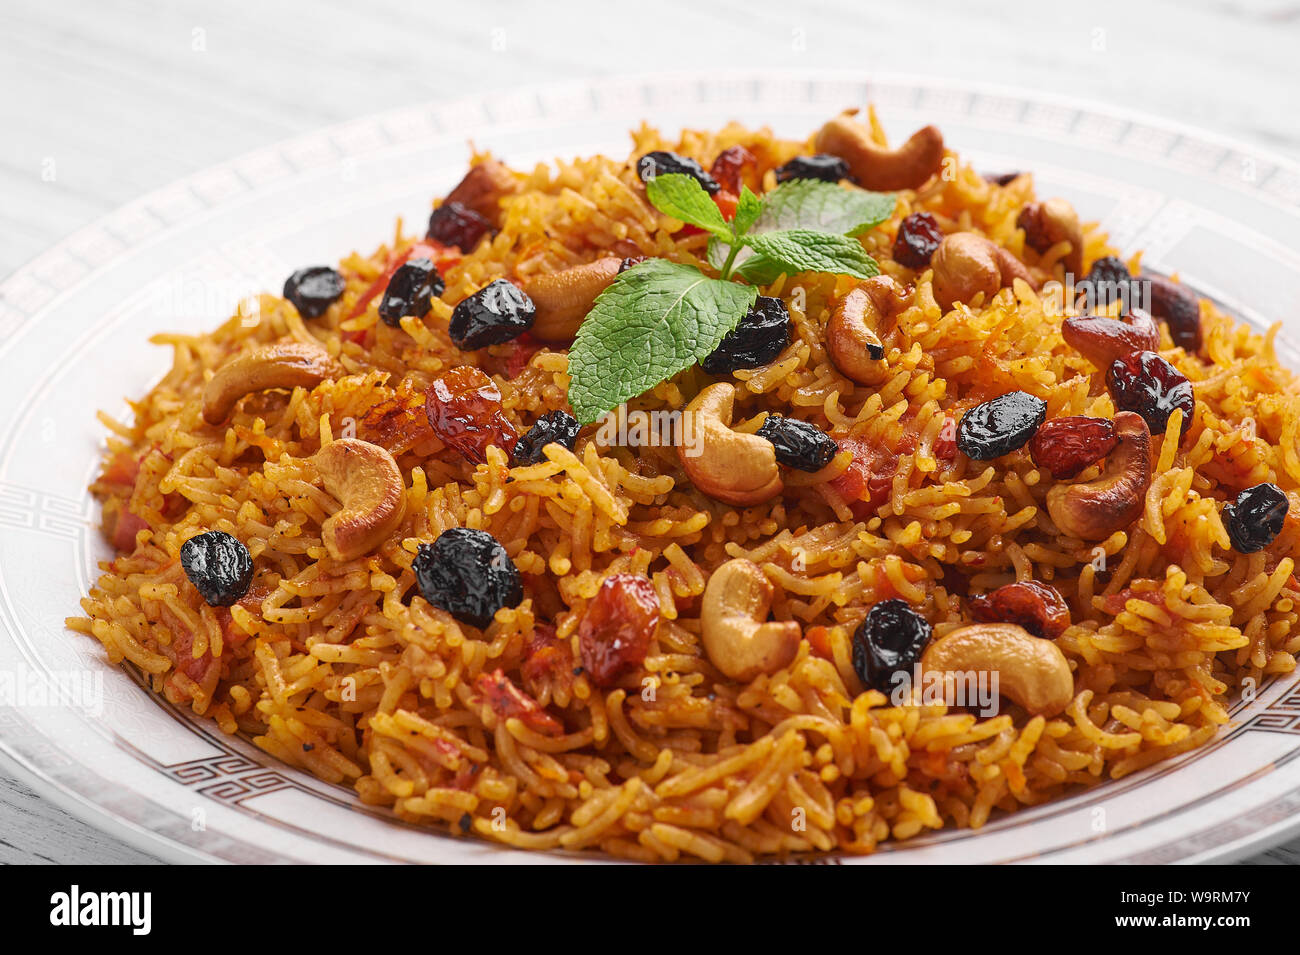 Vegetarian Kabsa Ramadan Food Kabsa Is Traditional Saudi Arabian Cuisine Dish Kabsa Cooks With Basmati Rice Spices Tomatoes Nuts And Raisins Cl Stock Photo Alamy